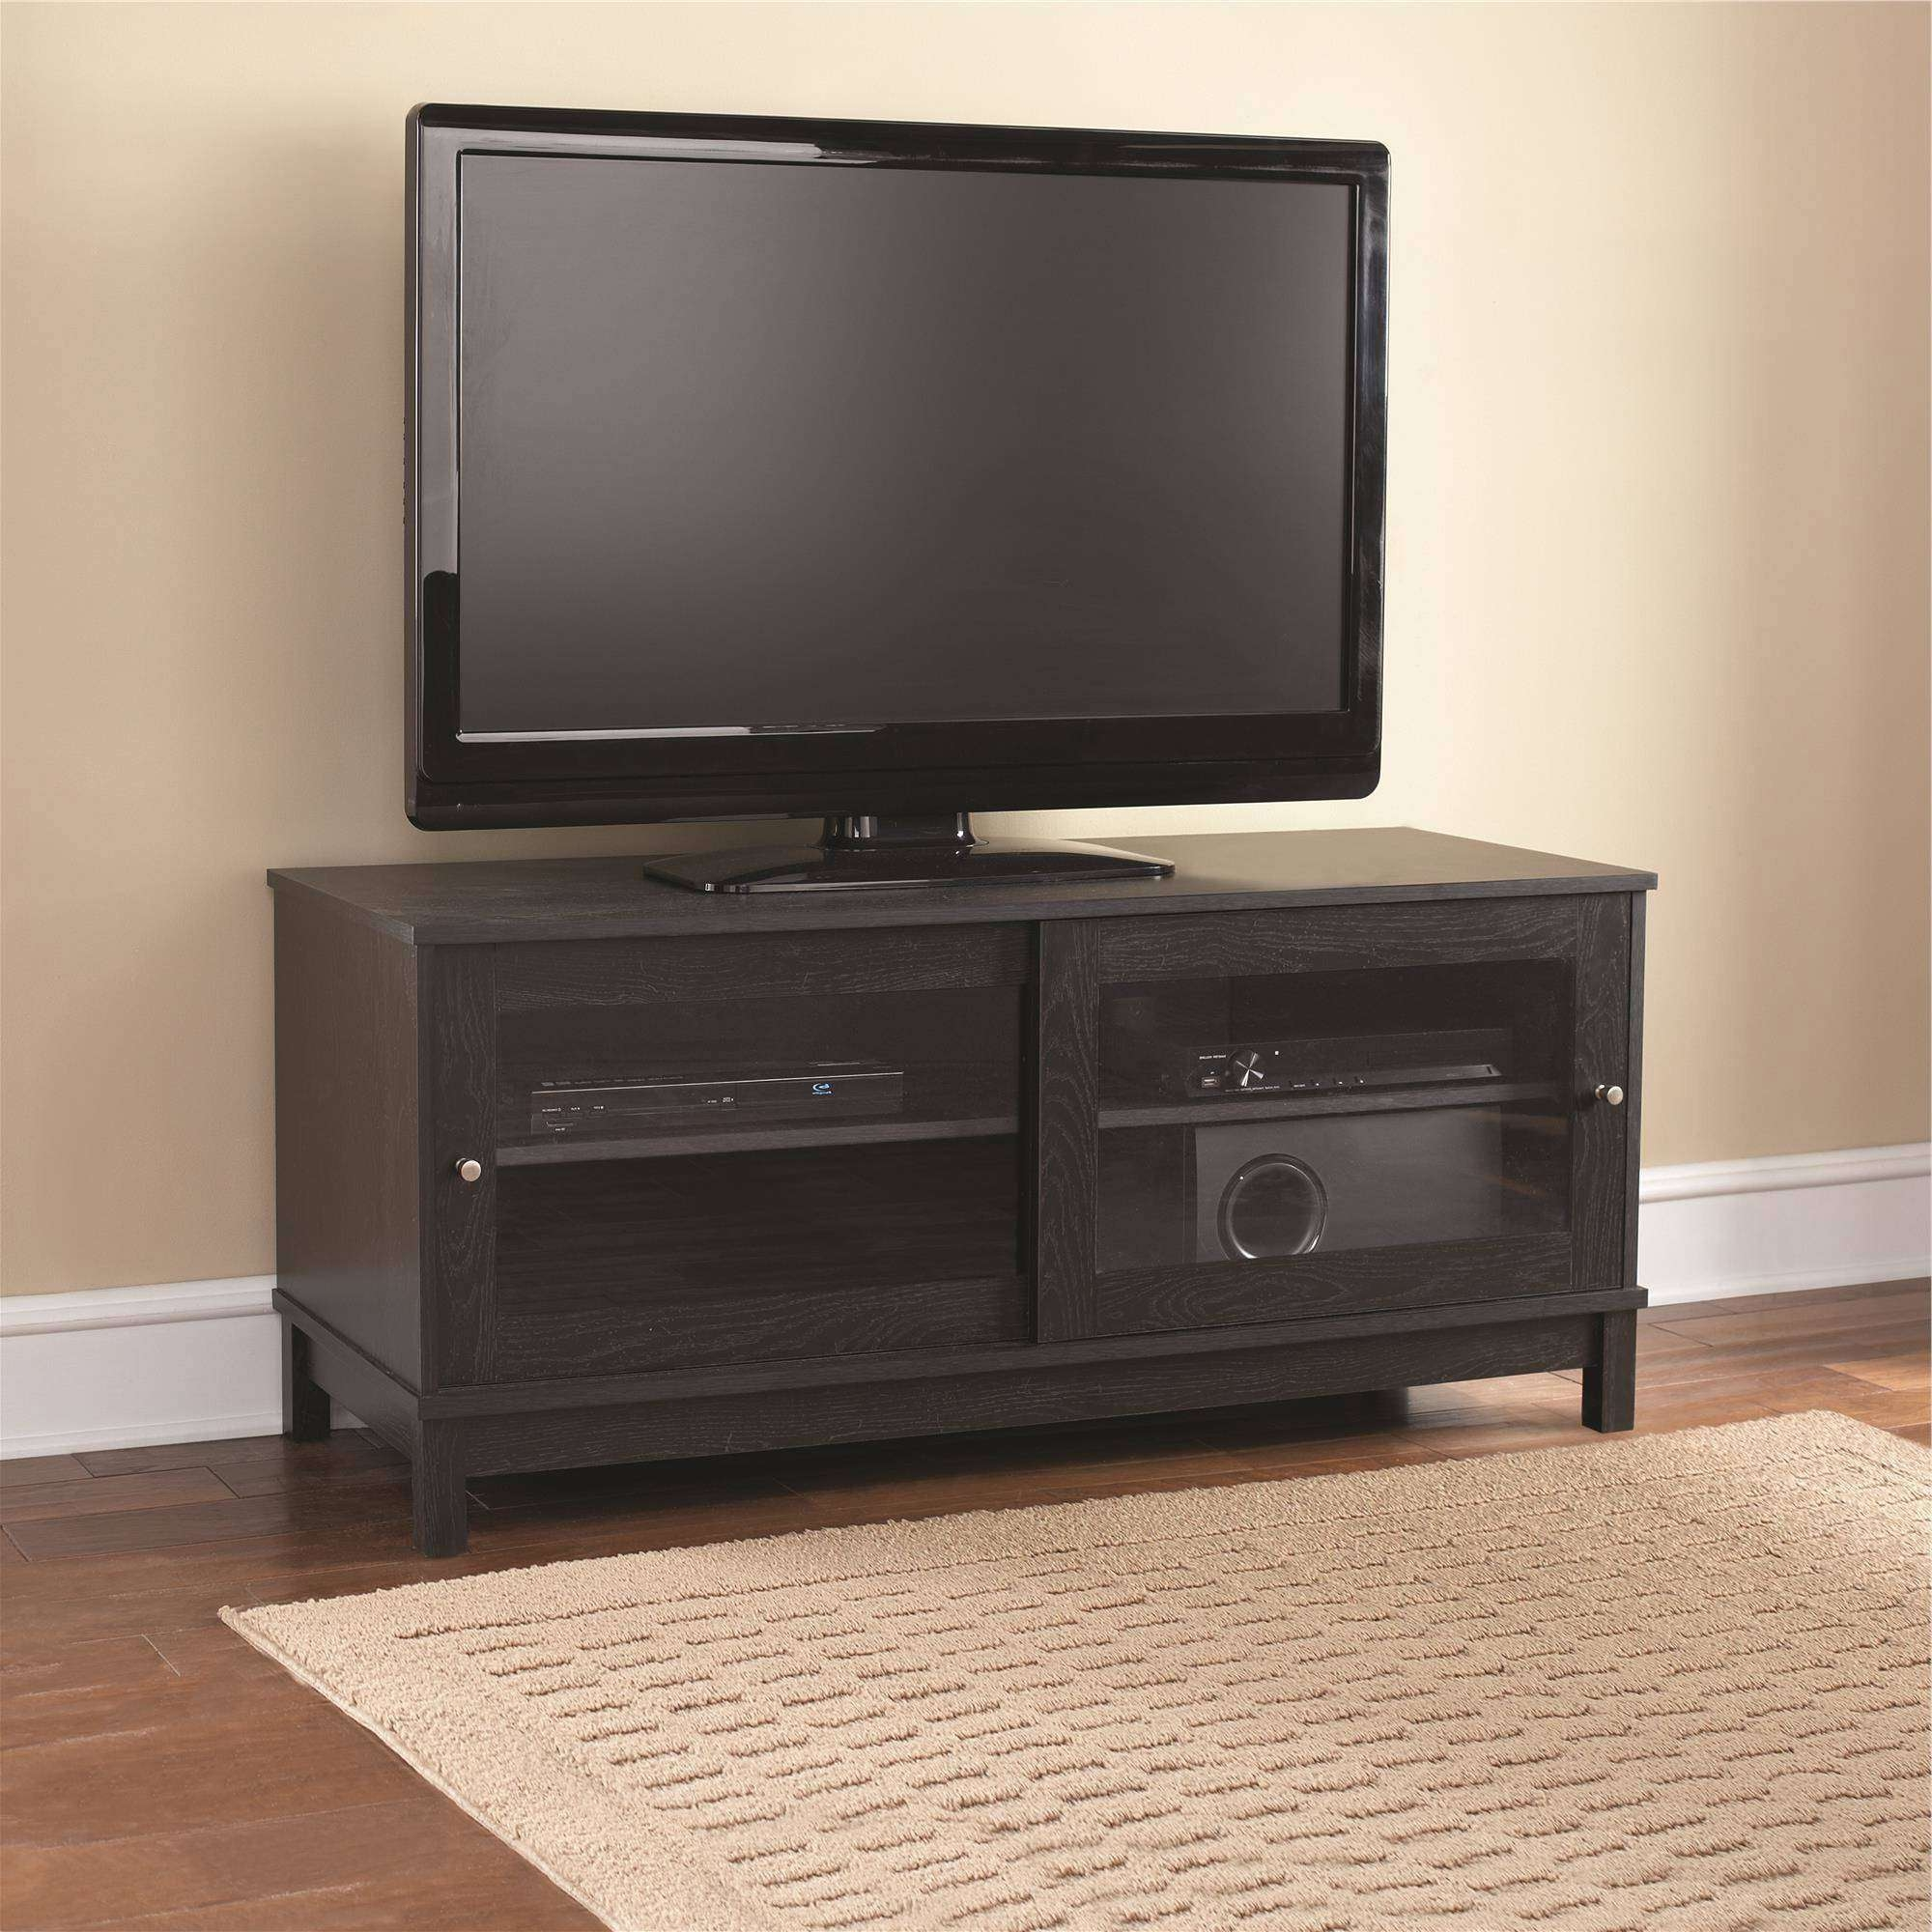 Black Tv Stand With Glass Doors Choice Image – Doors Design Ideas Inside Tv Cabinets With Glass Doors (View 20 of 20)